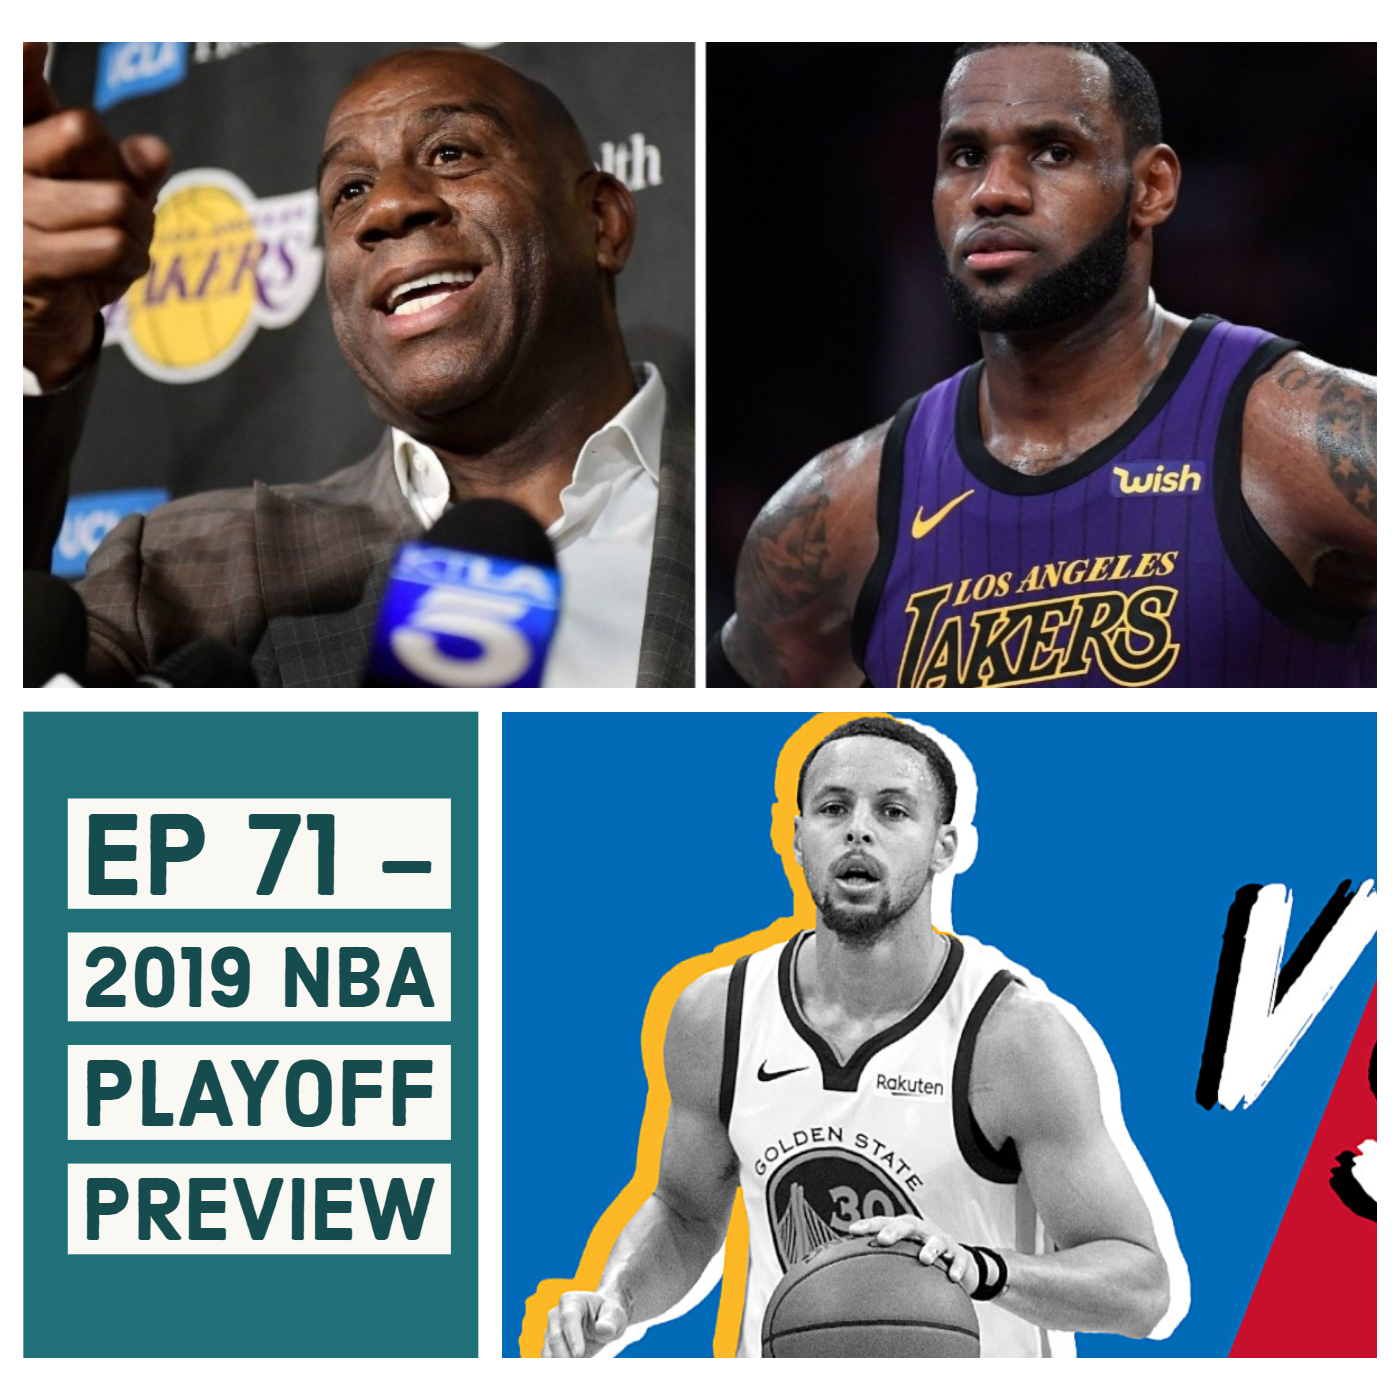 LBRS Ep 71 - 2019 NBA Playoff Preview — Gifted Sounds Network